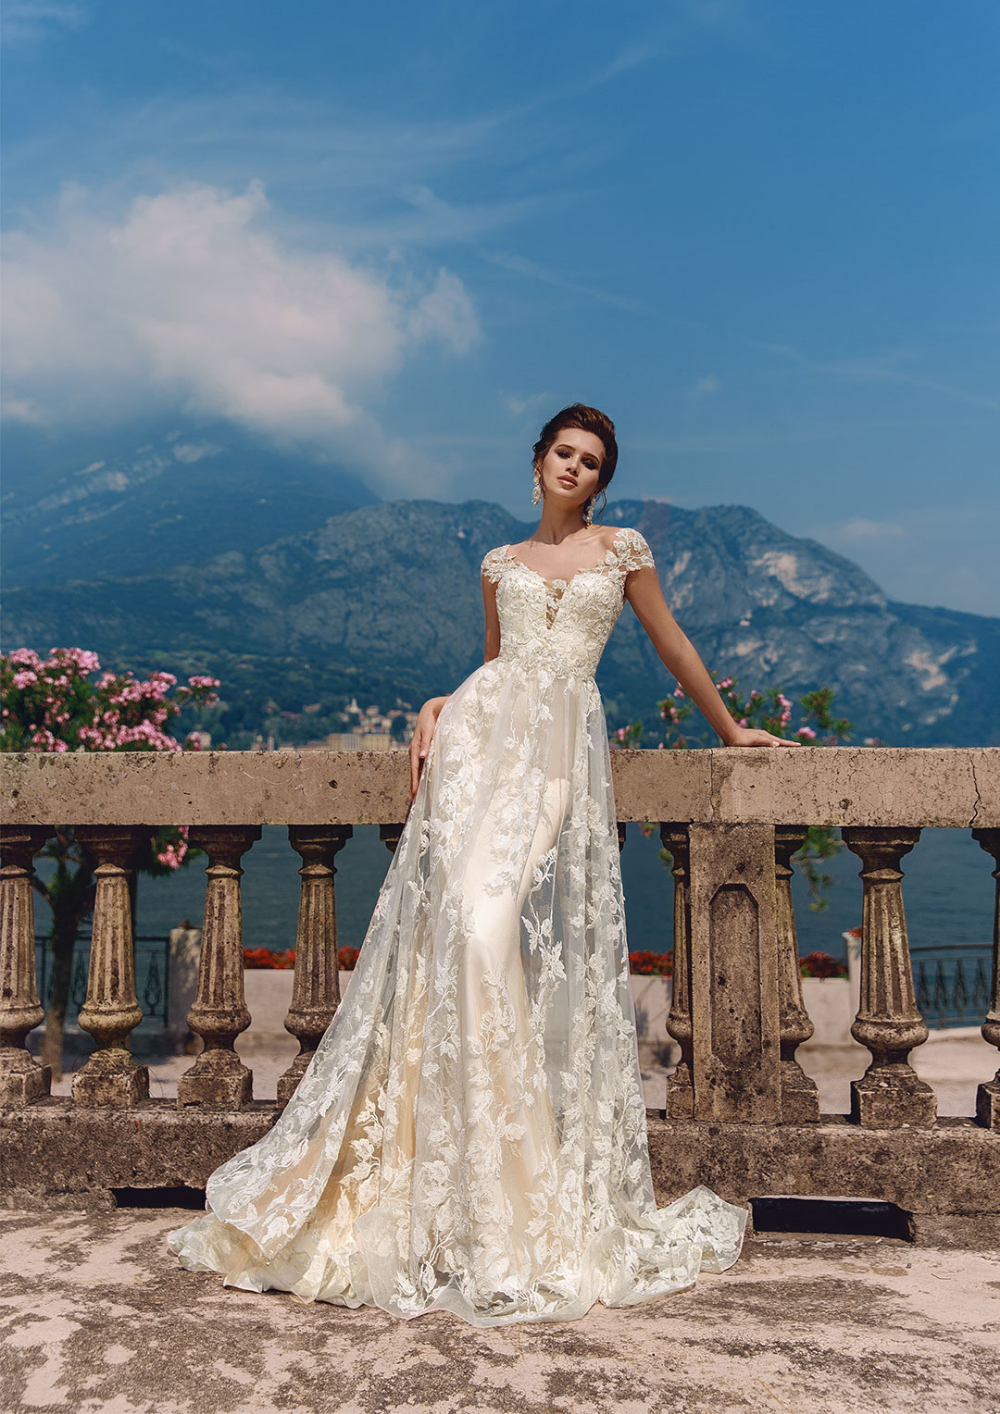 Choose The Best Wedding Dress Here At Elite Dress Bridal Seattle Wedding Dress Shop Bridal Sto In 2020 Seattle Wedding Dress Affordable Wedding Dresses Wedding Dresses